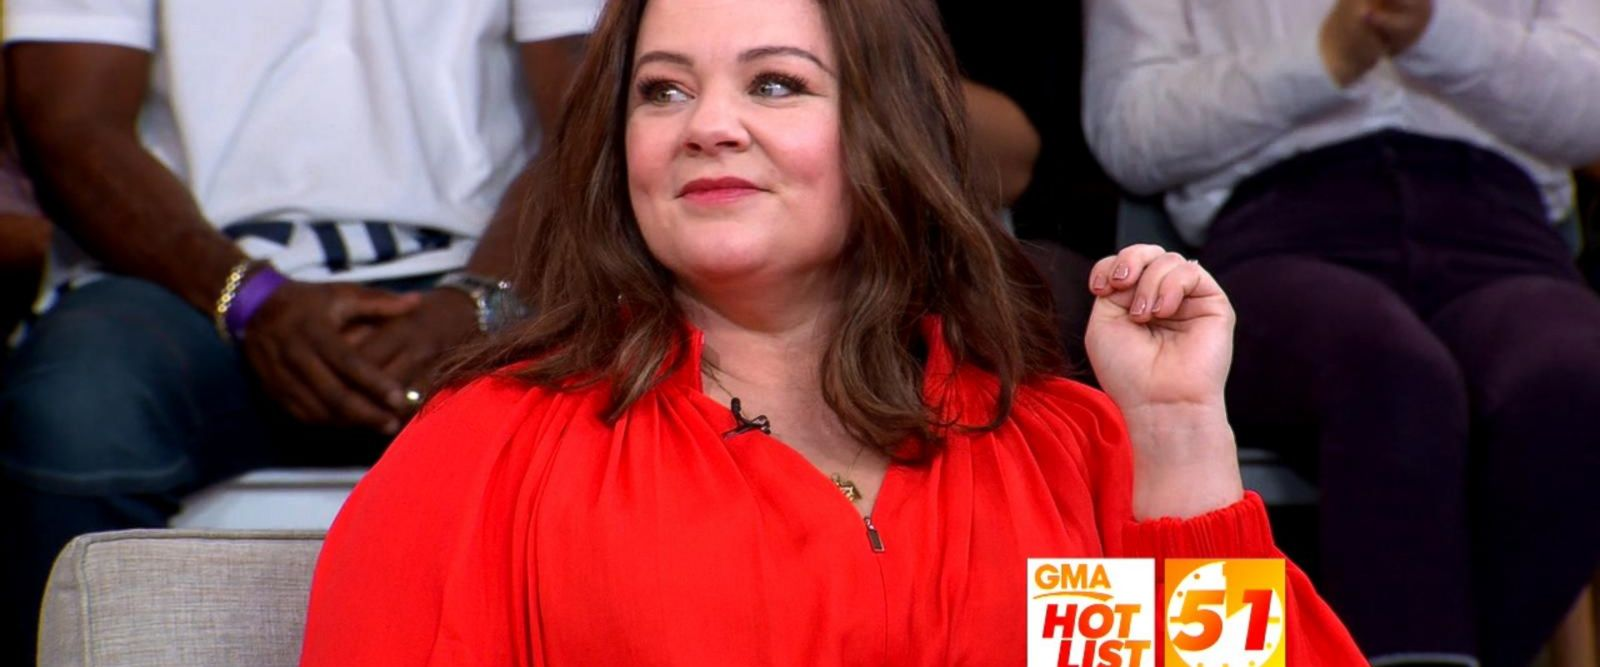 VIDEO: 'GMA' Hot List: Melissa McCarthy reflects on her high school hairstyle